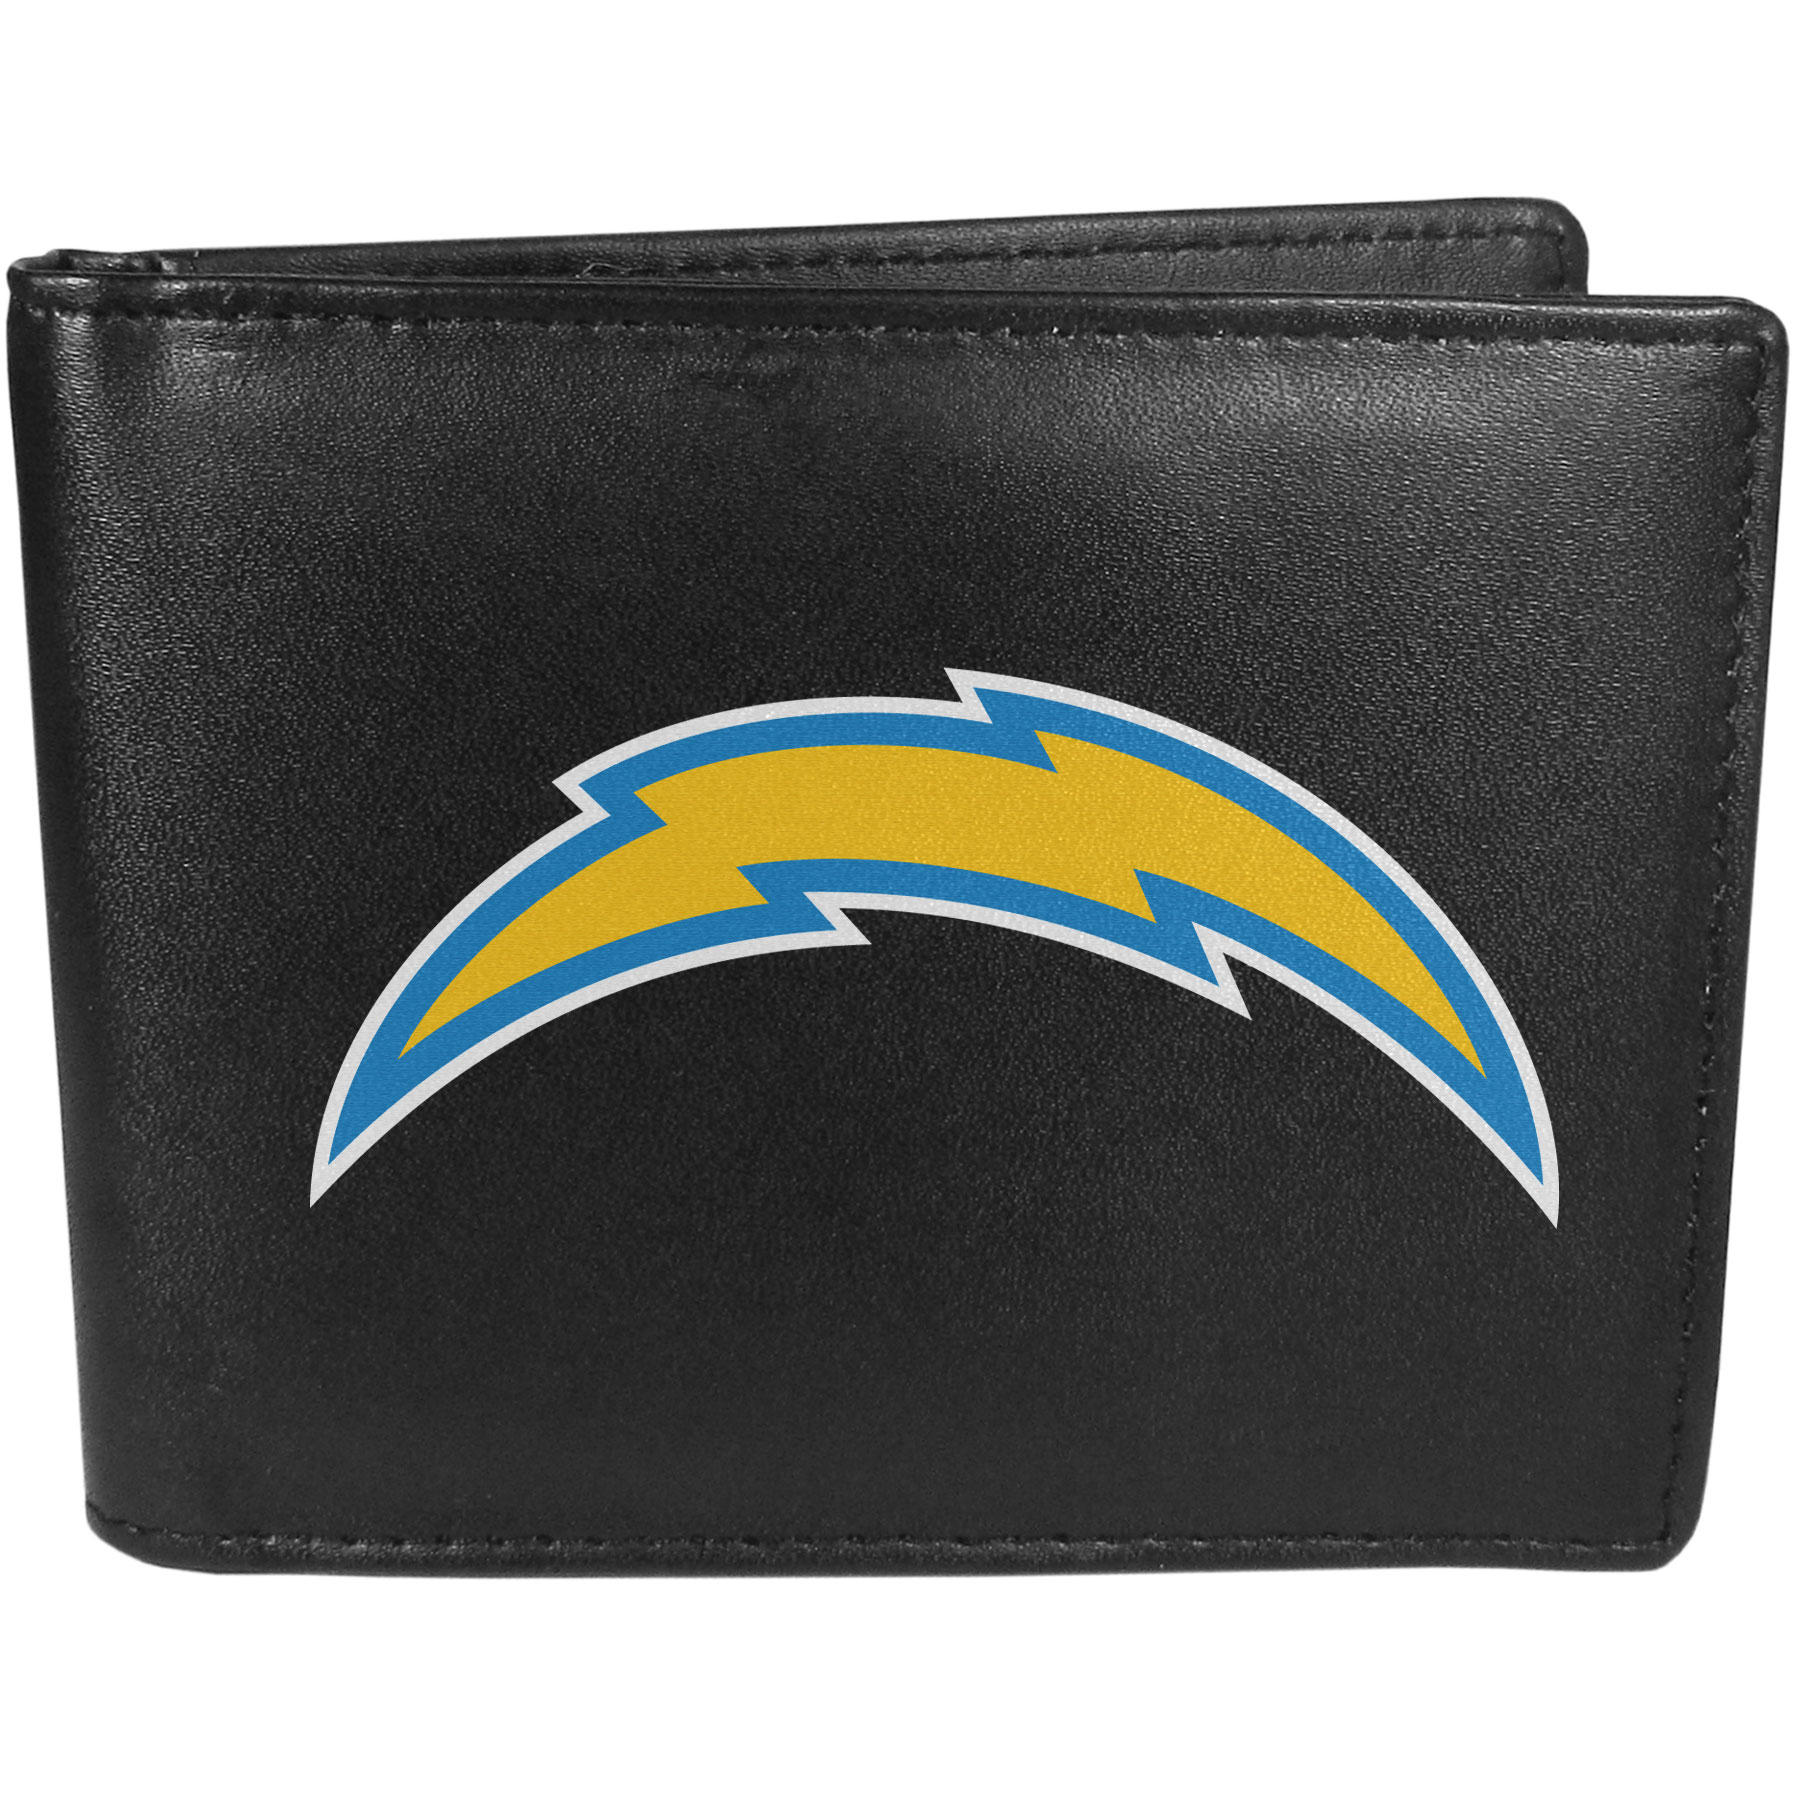 Los Angeles Chargers Bi-fold Wallet Large Logo - Sports fans do not have to sacrifice style with this classic bi-fold wallet that sports the Los Angeles Chargers extra large logo. This men's fashion accessory has a leather grain look and expert craftmanship for a quality wallet at a great price. The wallet features inner credit card slots, windowed ID slot and a large billfold pocket. The front of the wallet features a printed team logo.